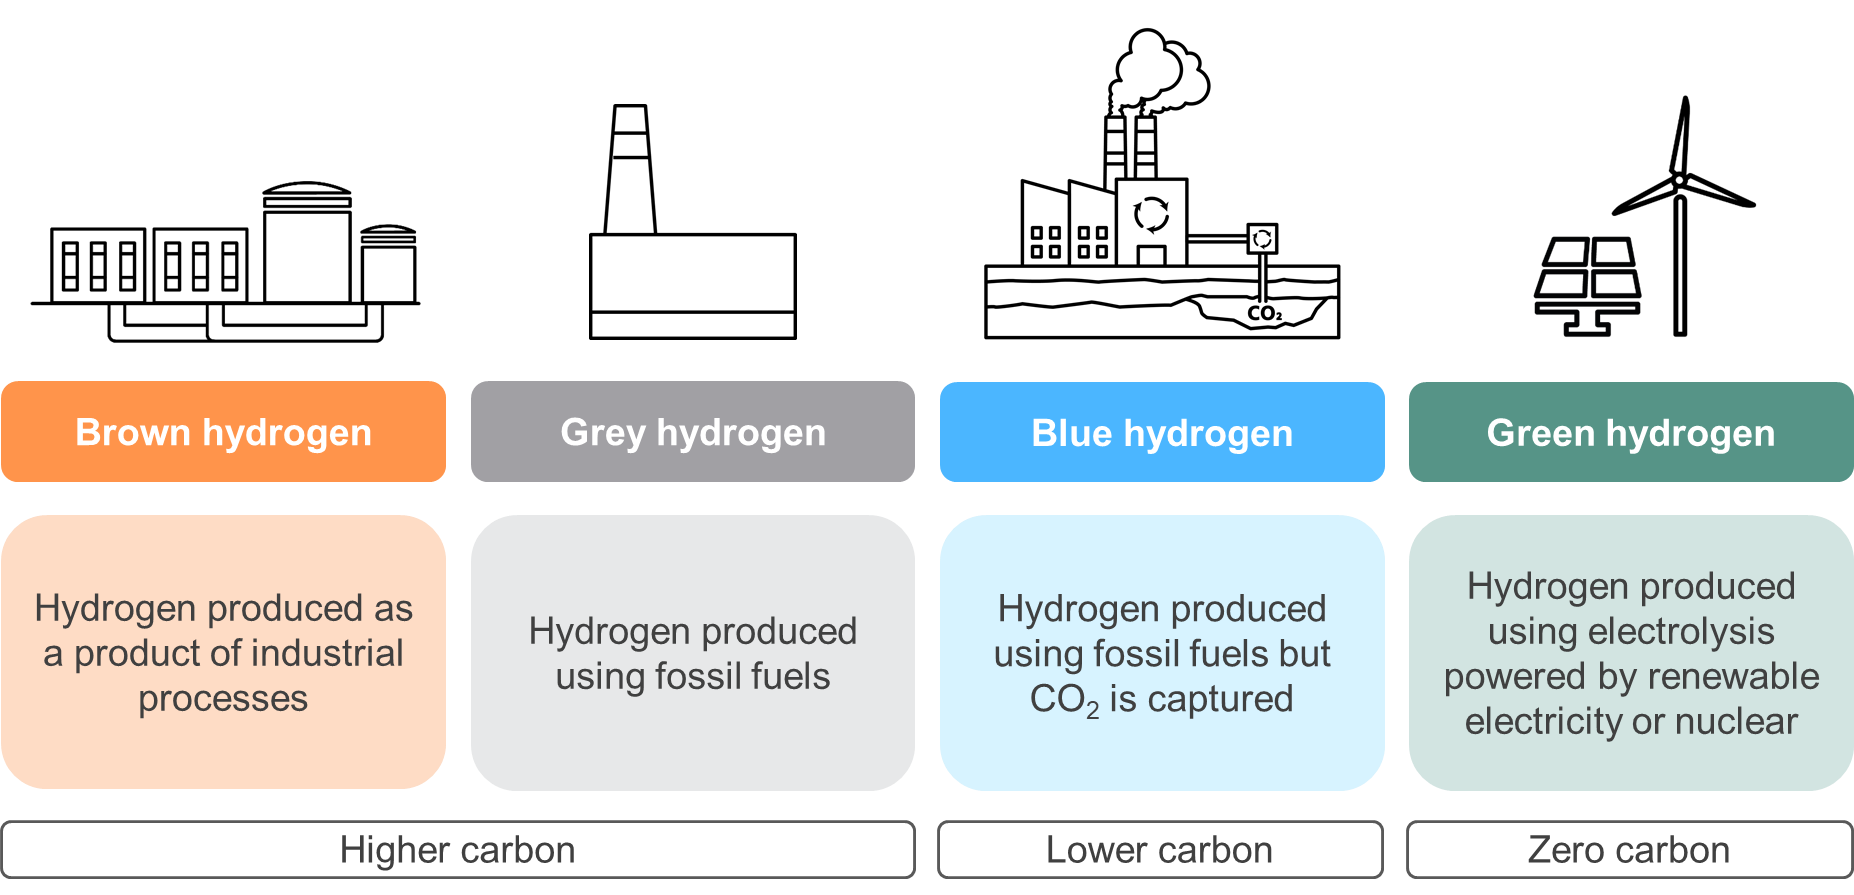 Different Categories of Hydrogen Production - Dirty to Clean